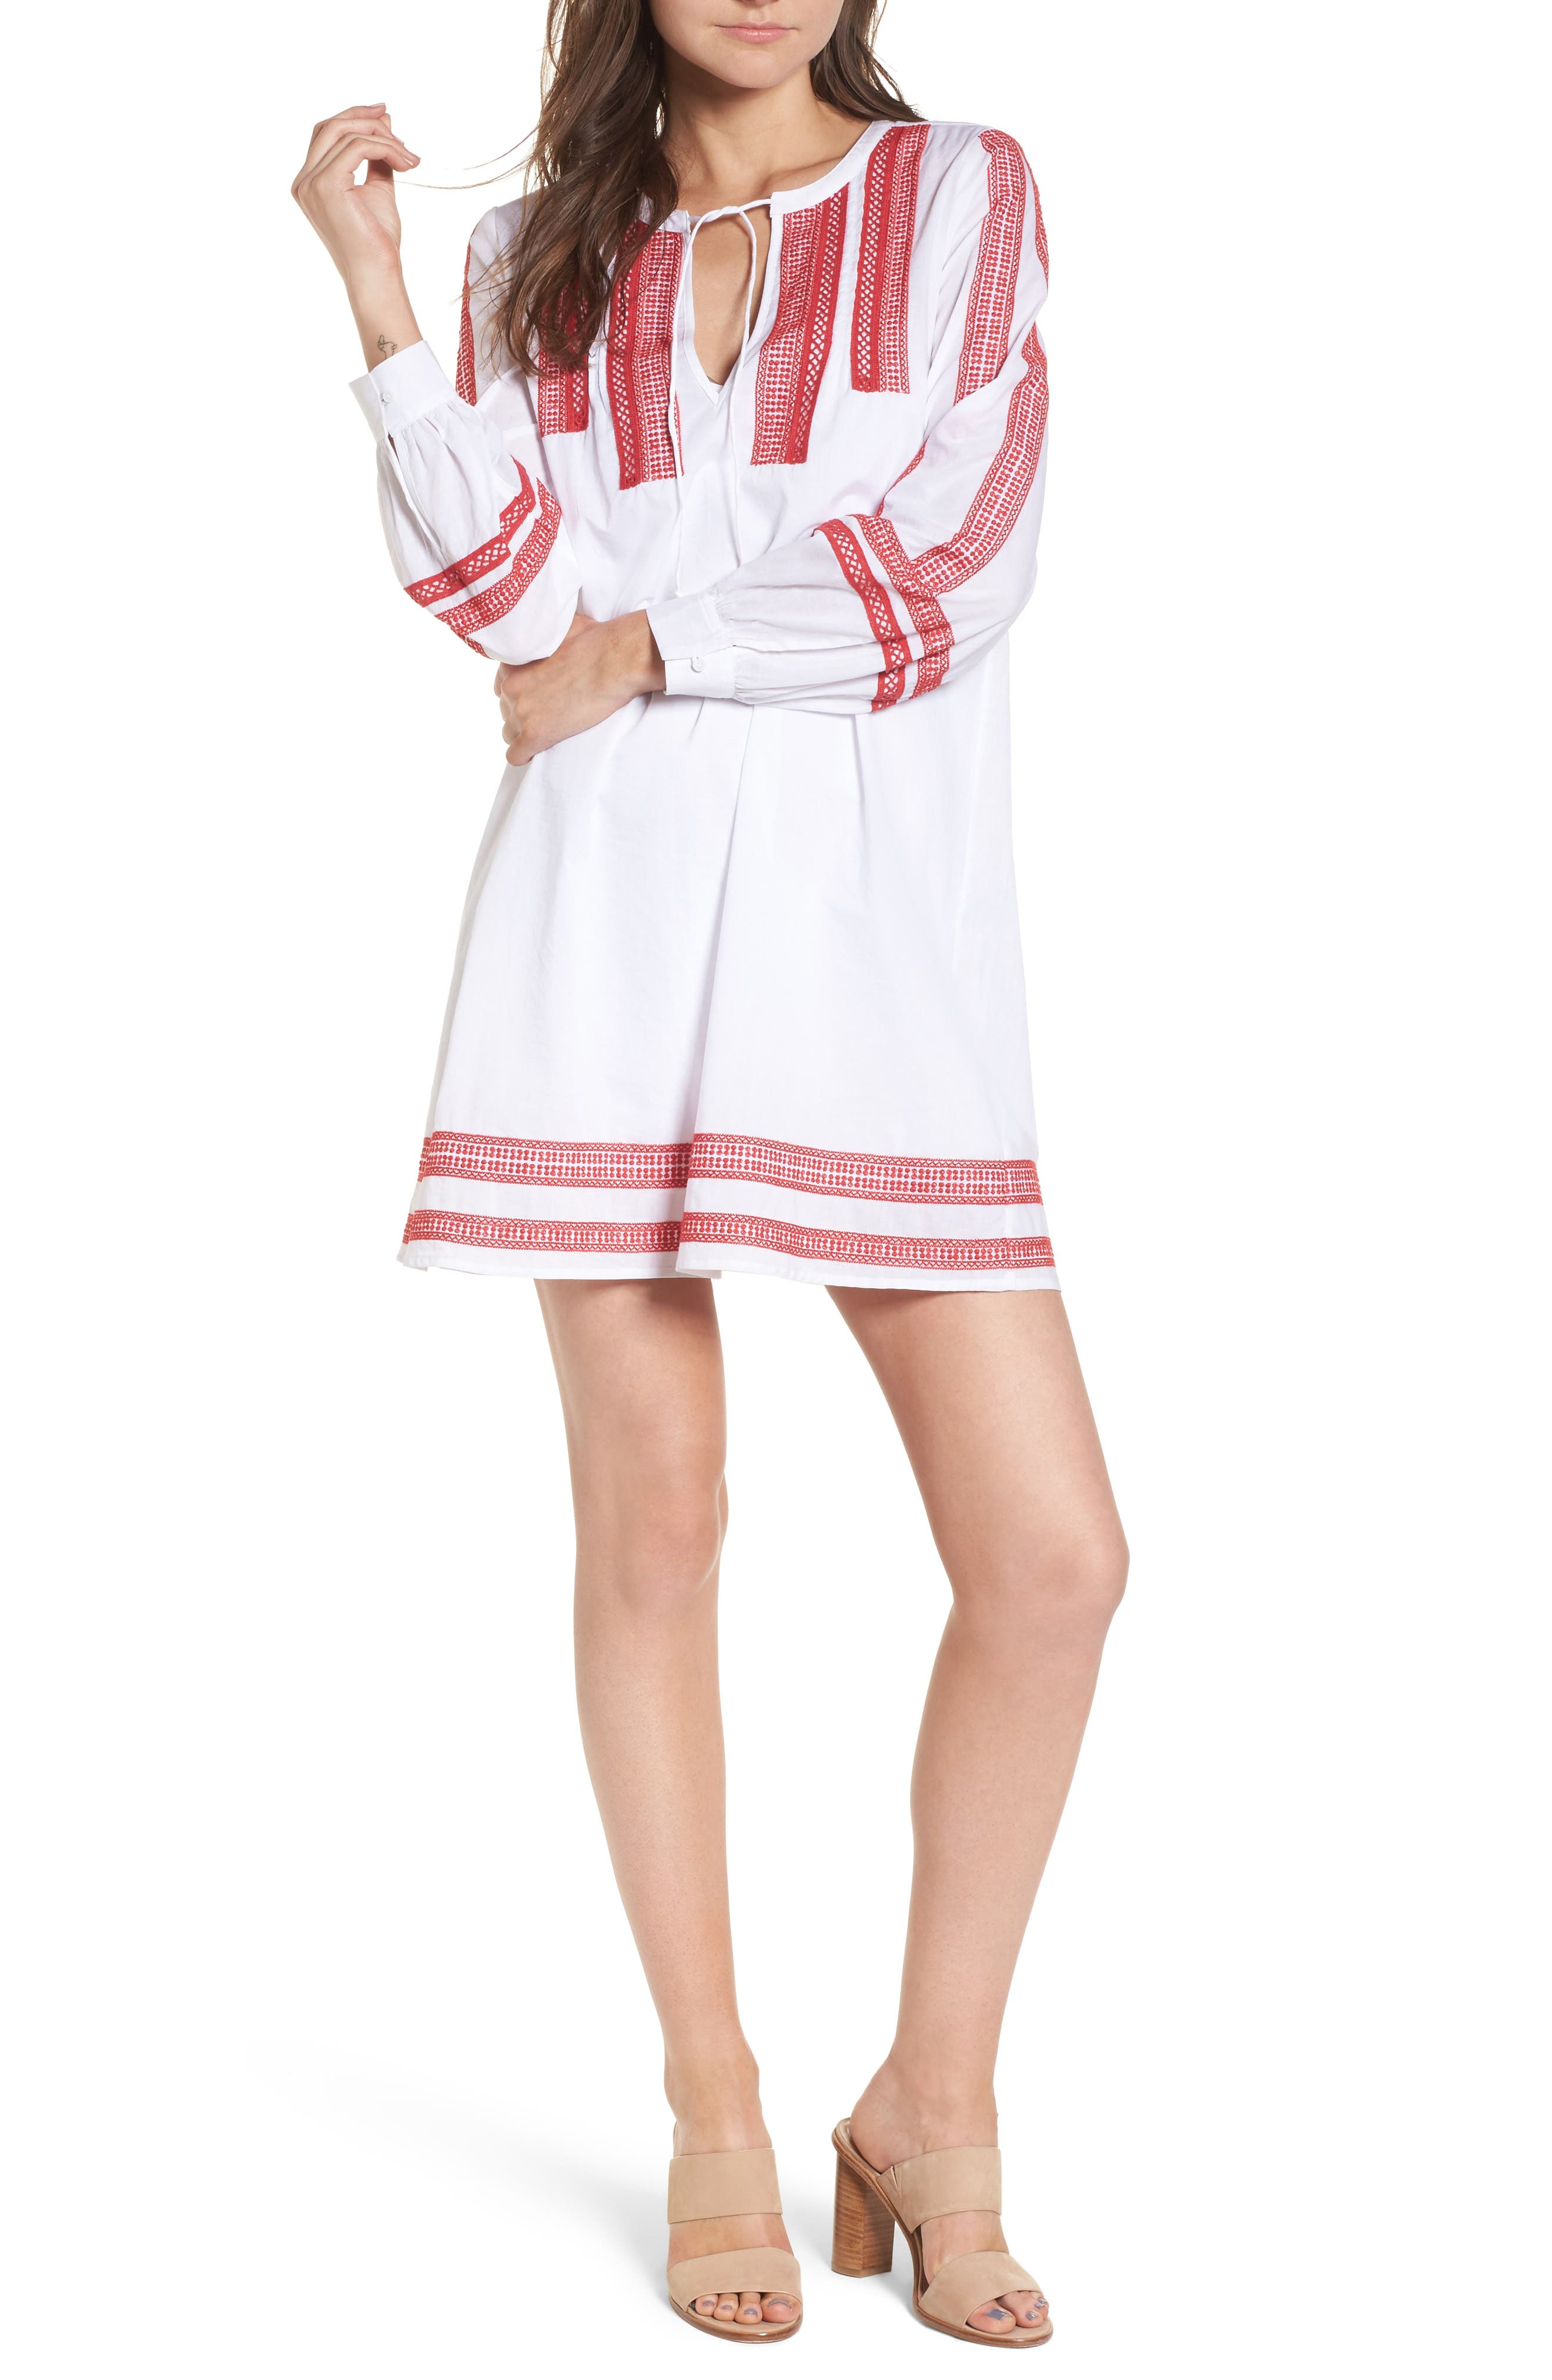 Embroidered Lace Minidress,                         Main,                         color, White Red Lipstick Embroidery